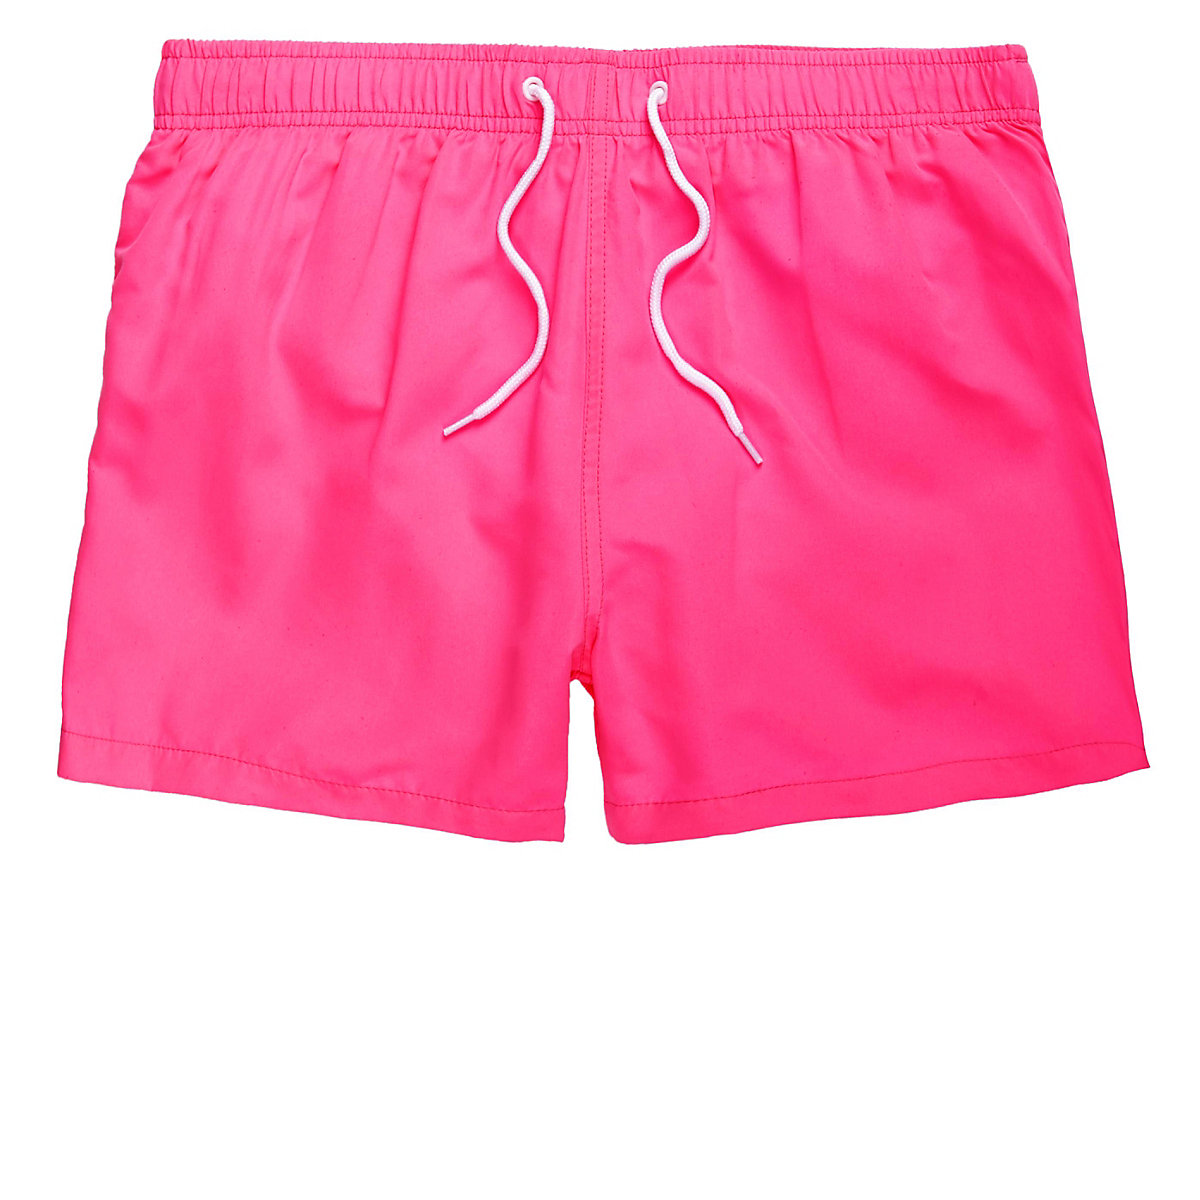 Pink neon swim trunks